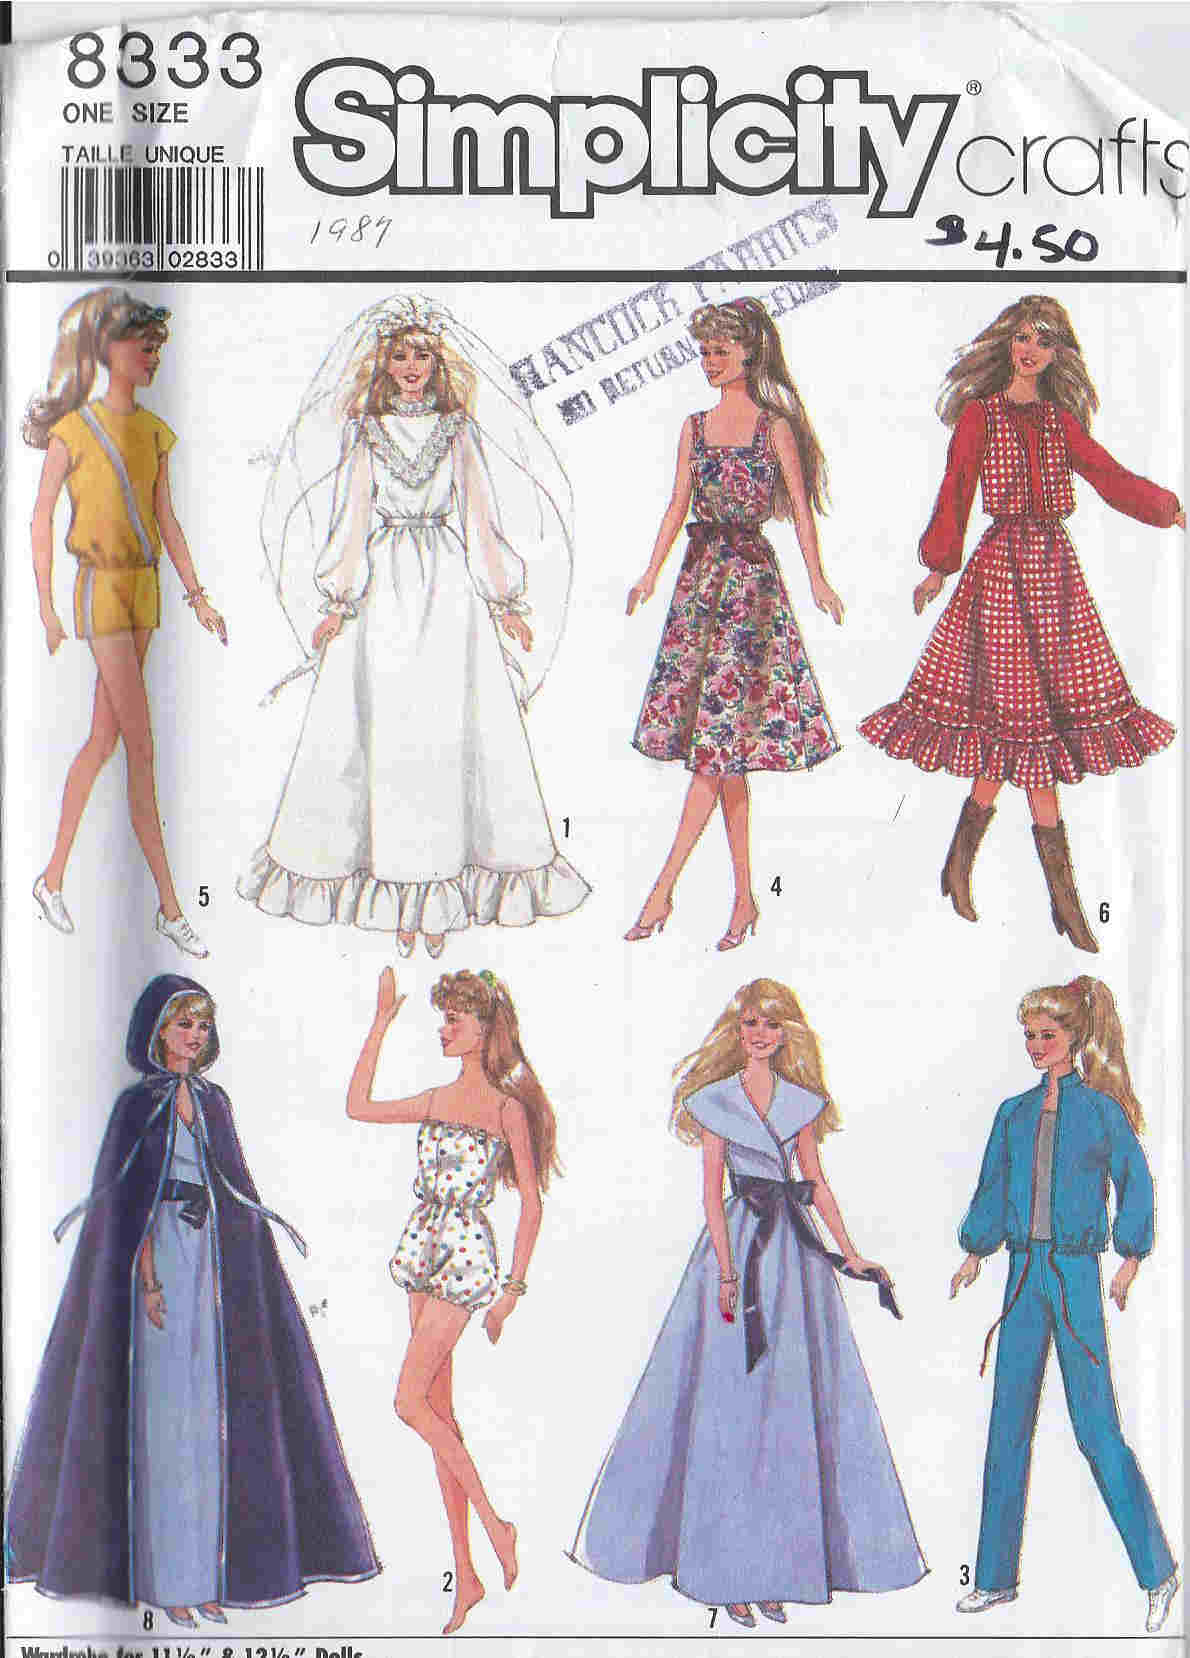 sewingpatterns dollbarbie simplicity wedding dress patterns barbie doll wedding gown veil sewing pattern larger image Simplicity